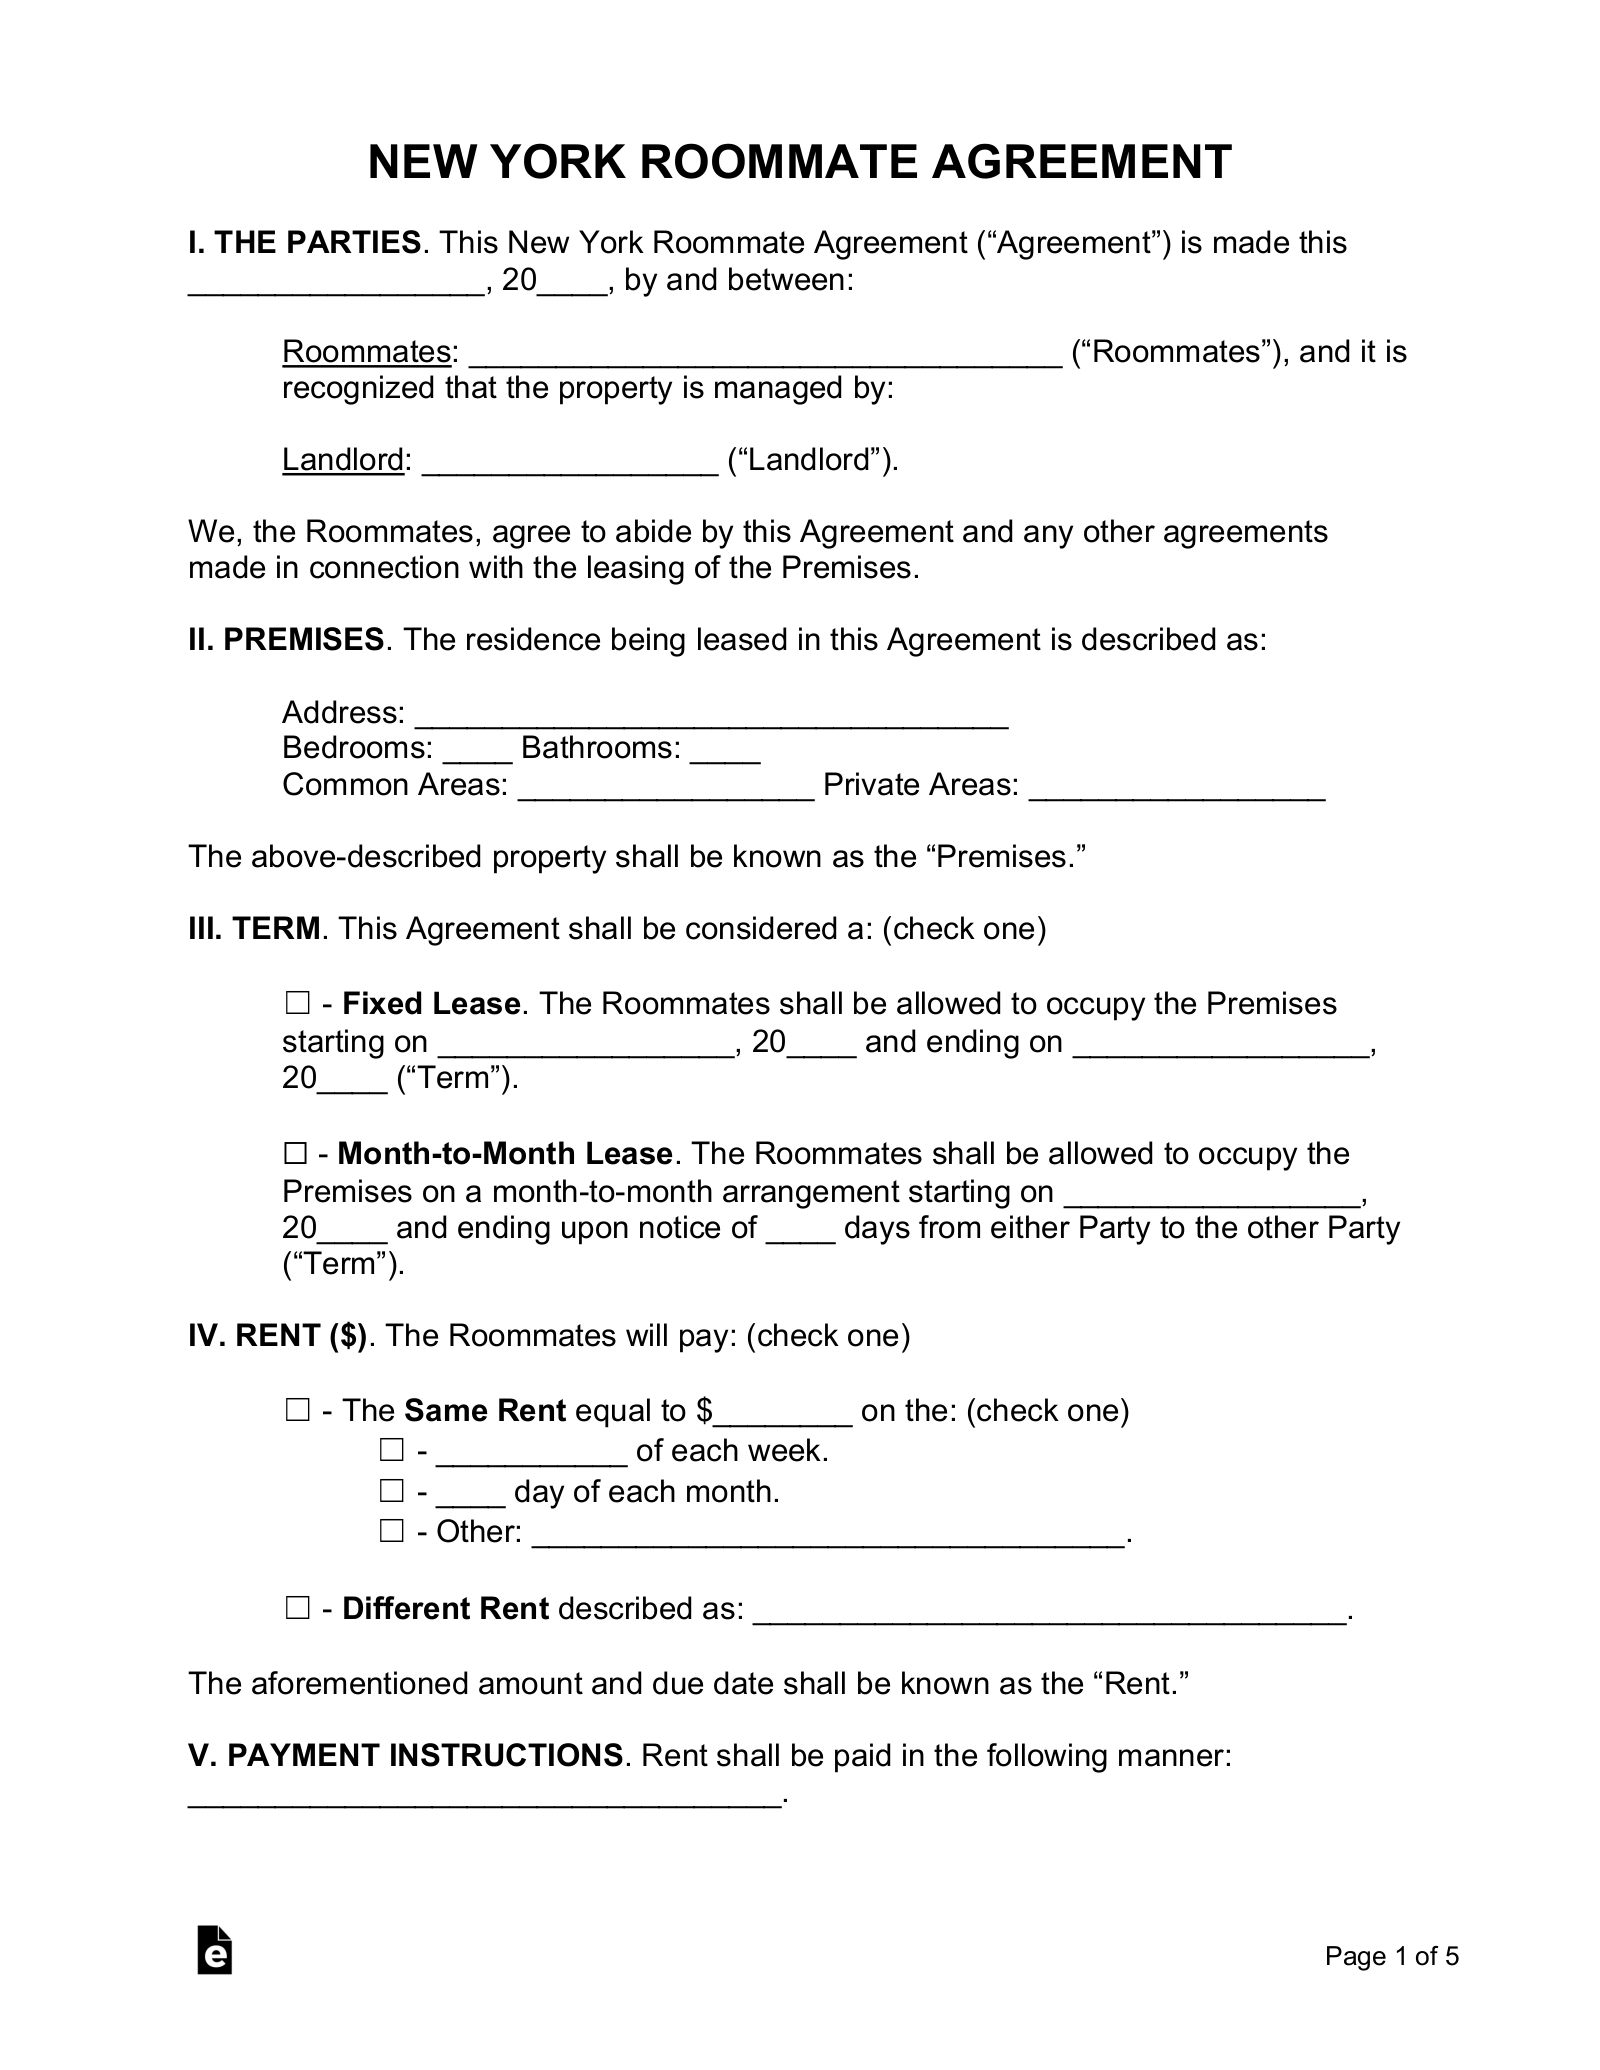 Free New York Roommate Agreement Form Pdf Word Eforms